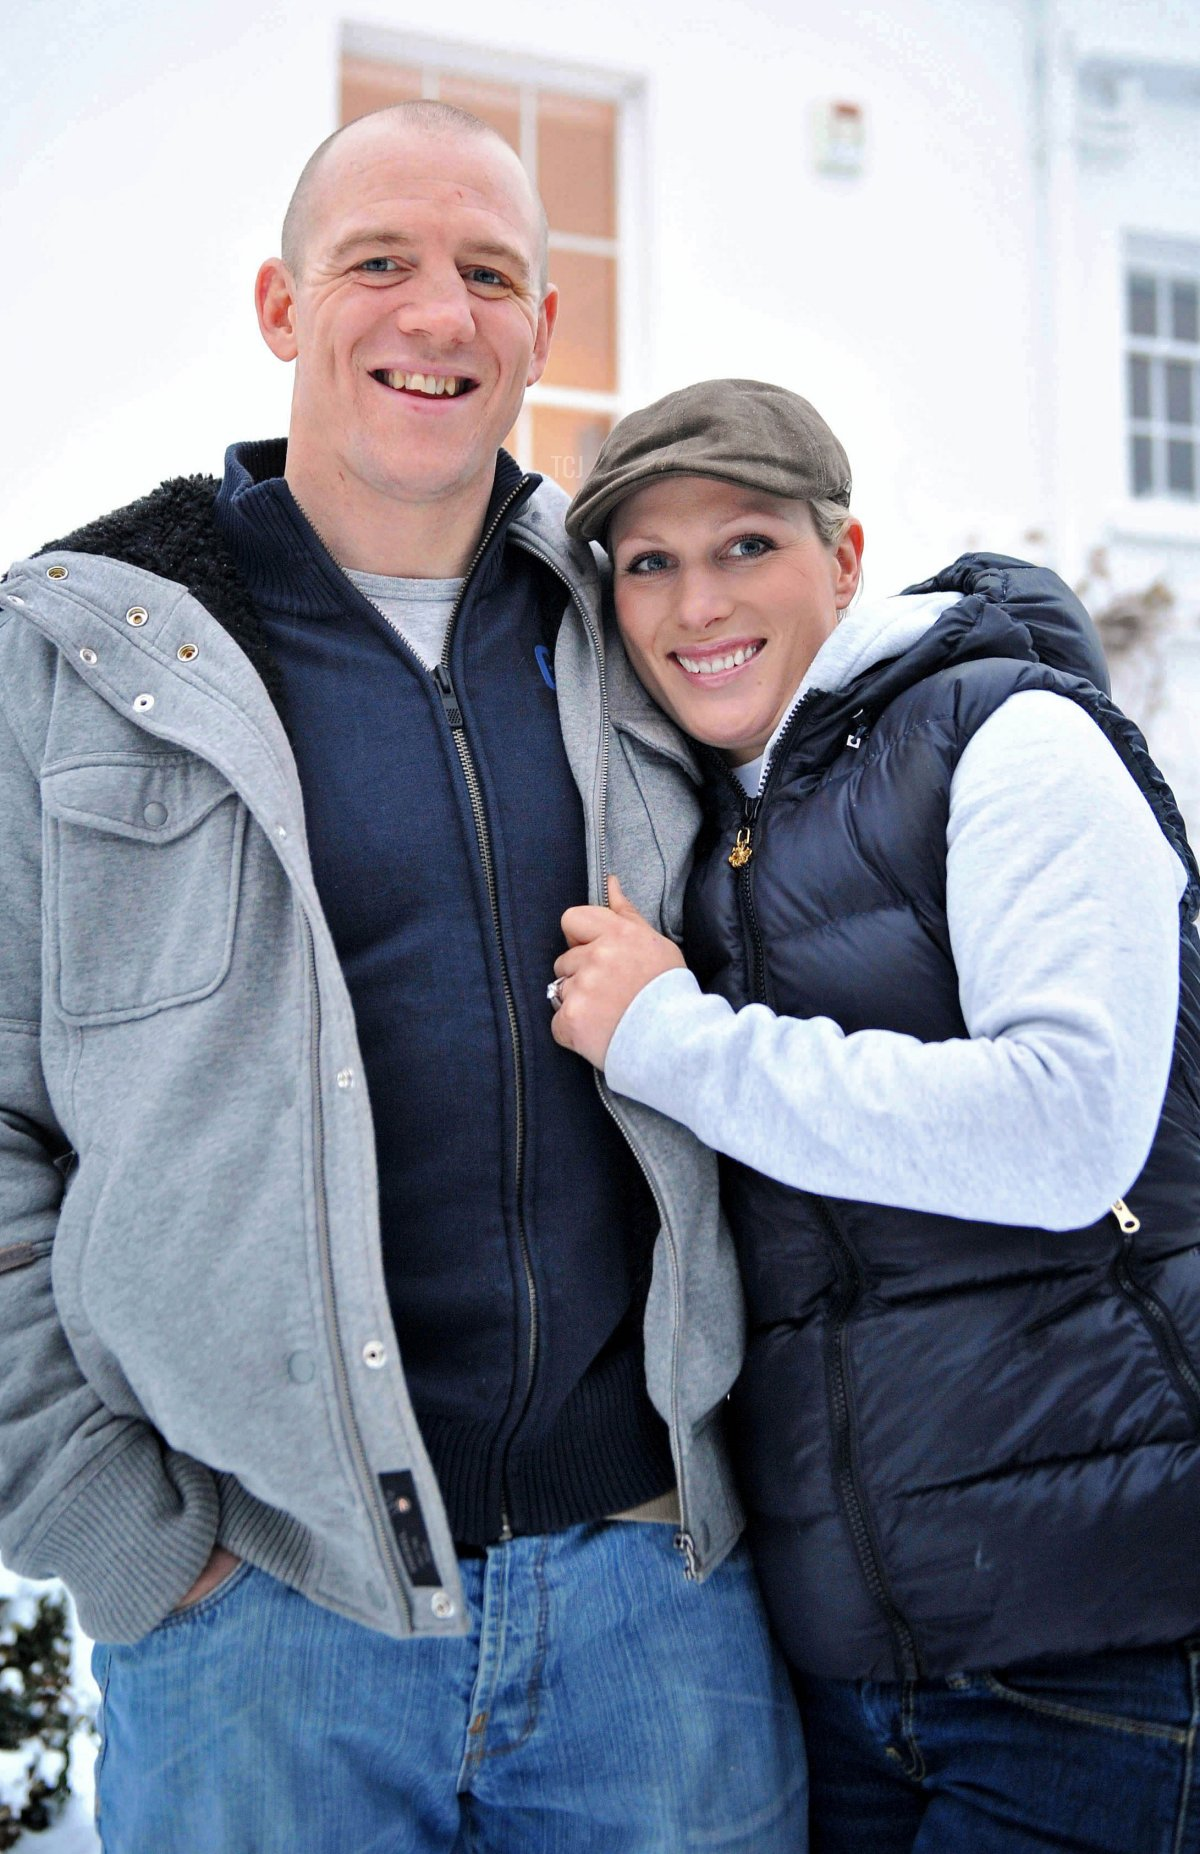 Zara Phillips, daughter of Princess Anne, and grand-daughter of Britain's Queen Elizabeth II, poses for a photograph with her fiance, England rugby player Mike Tindall, after the announcement of their engagement, at their home in Gloucestershire, south west England on December 21, 2010